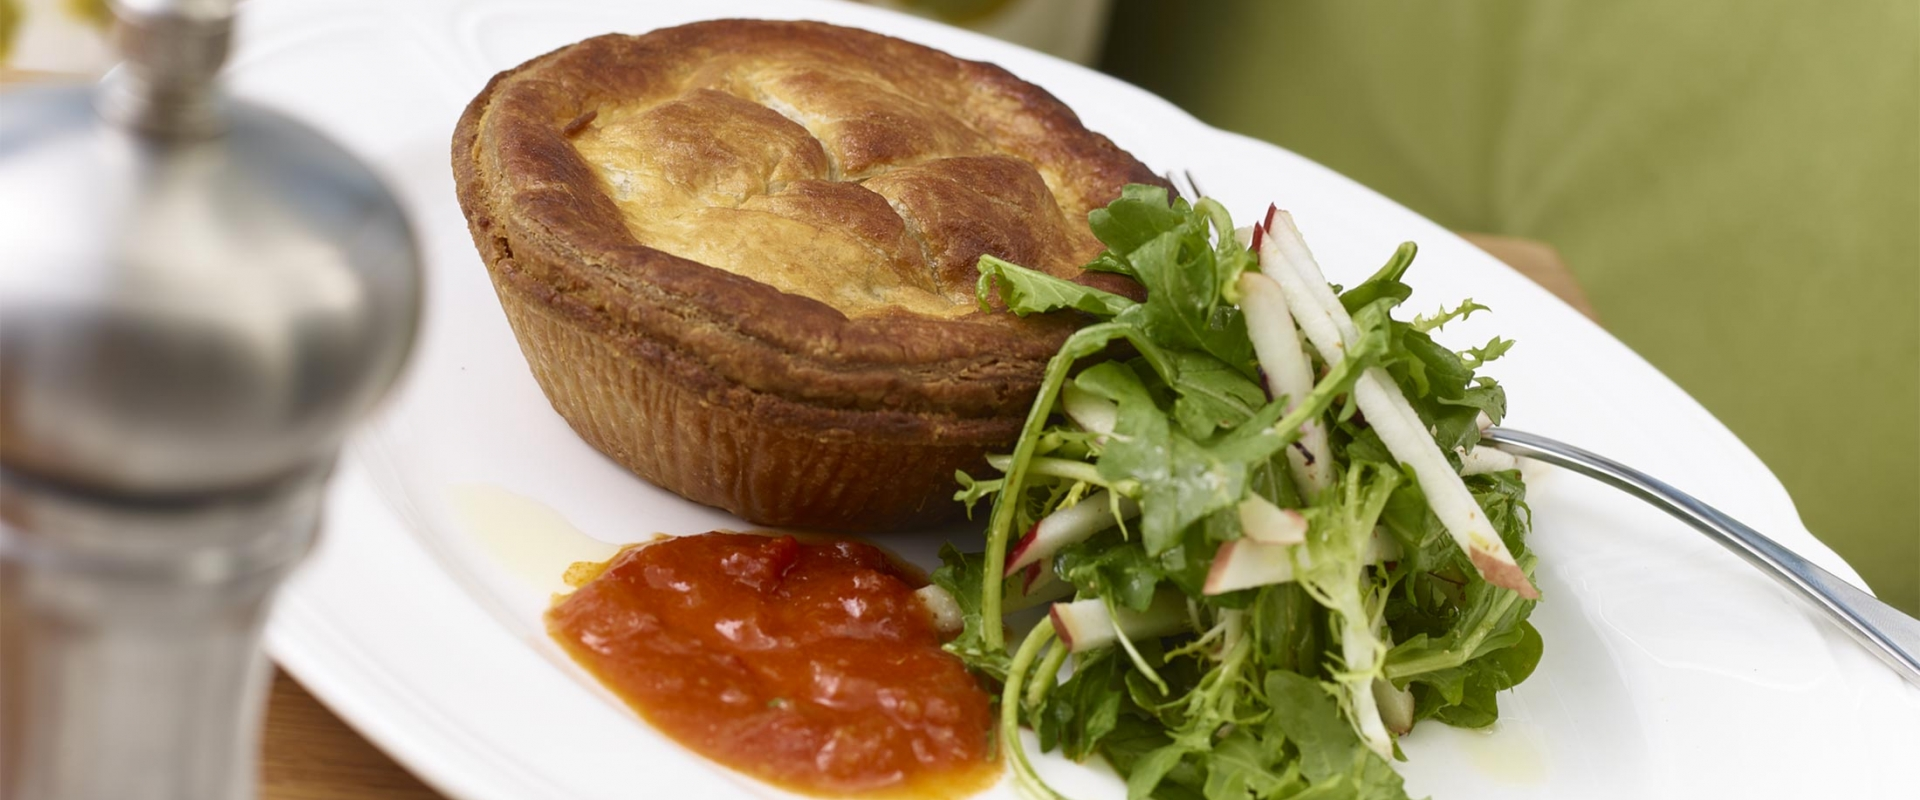 Delicious tourtiere pie and side salad from Honey Salt at Parq Vancouver